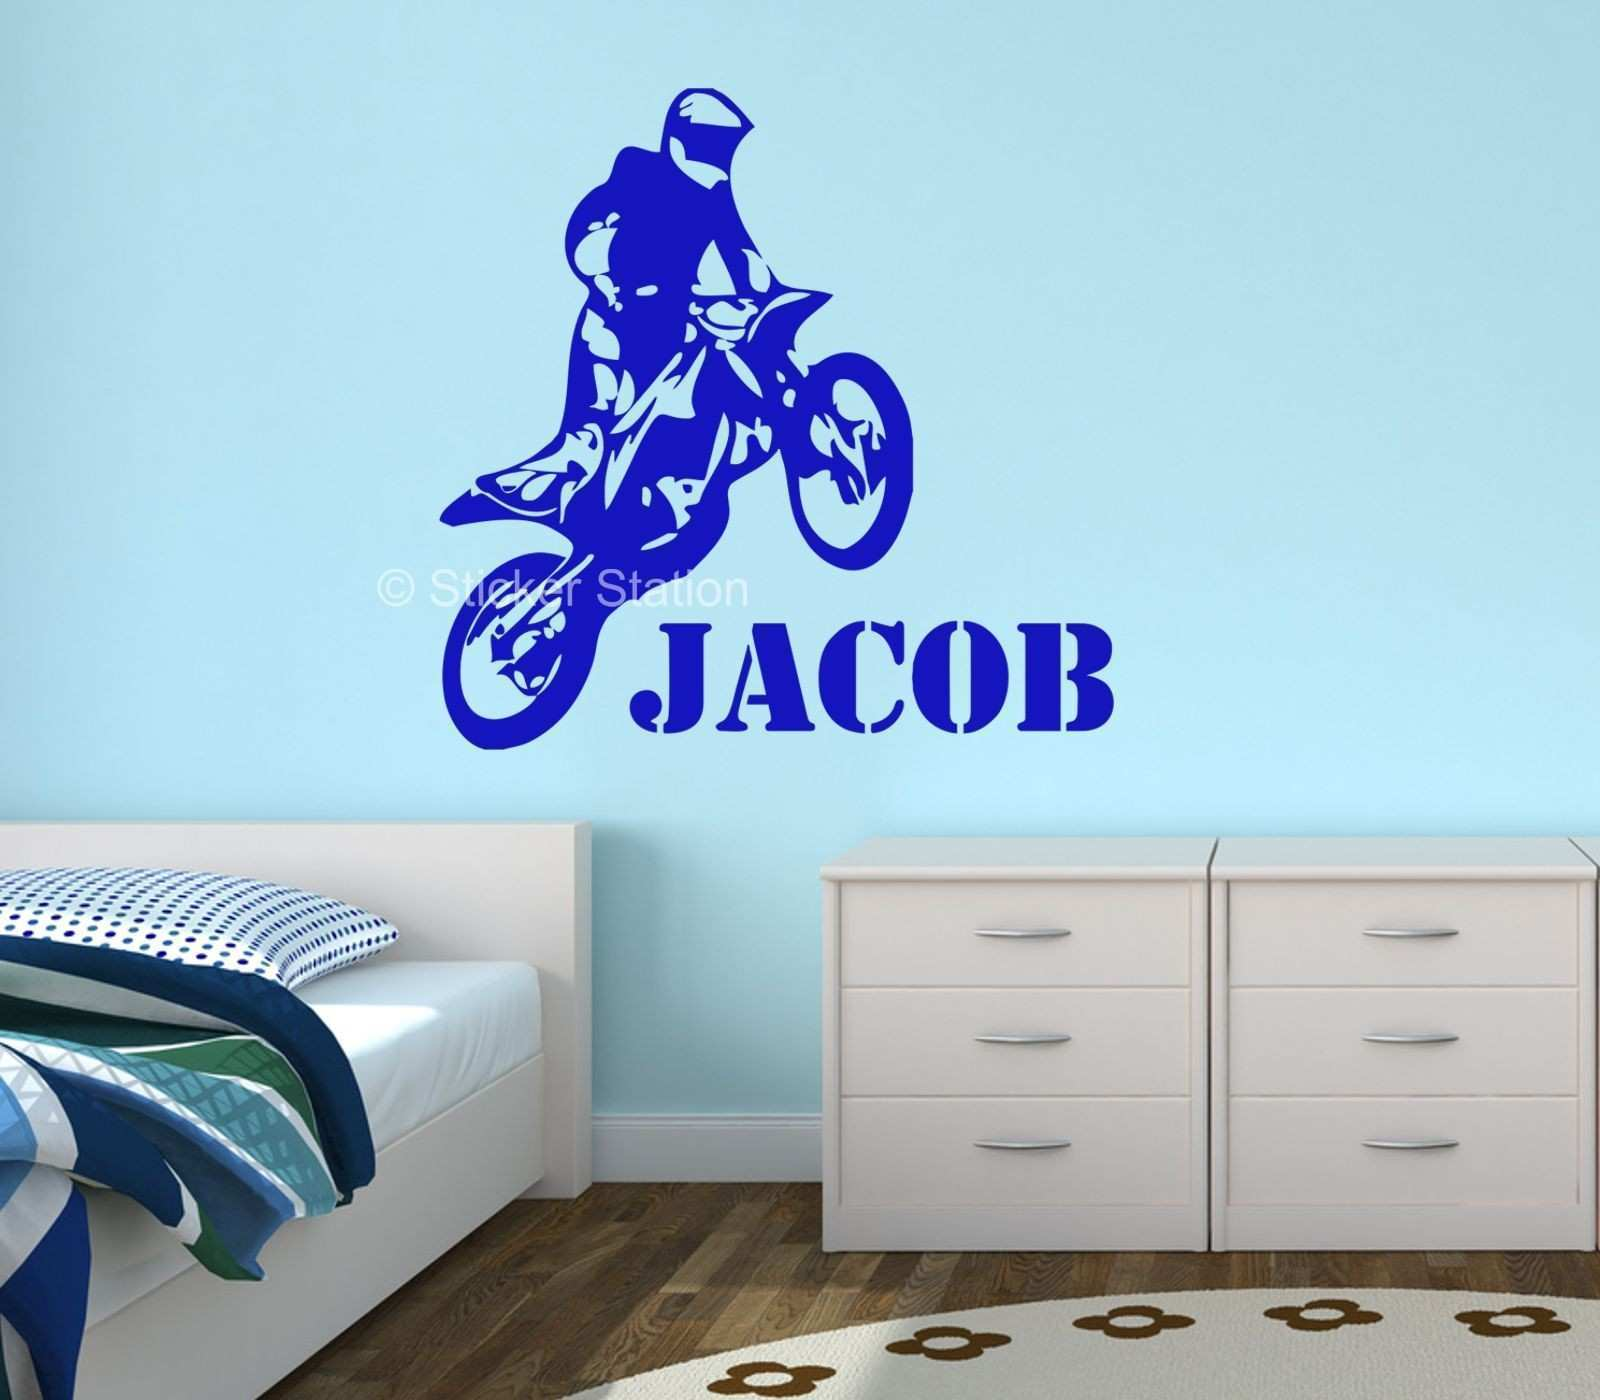 Stickers Wall Art Stickers Amazon Uk Also Wall Art Stickers Nz